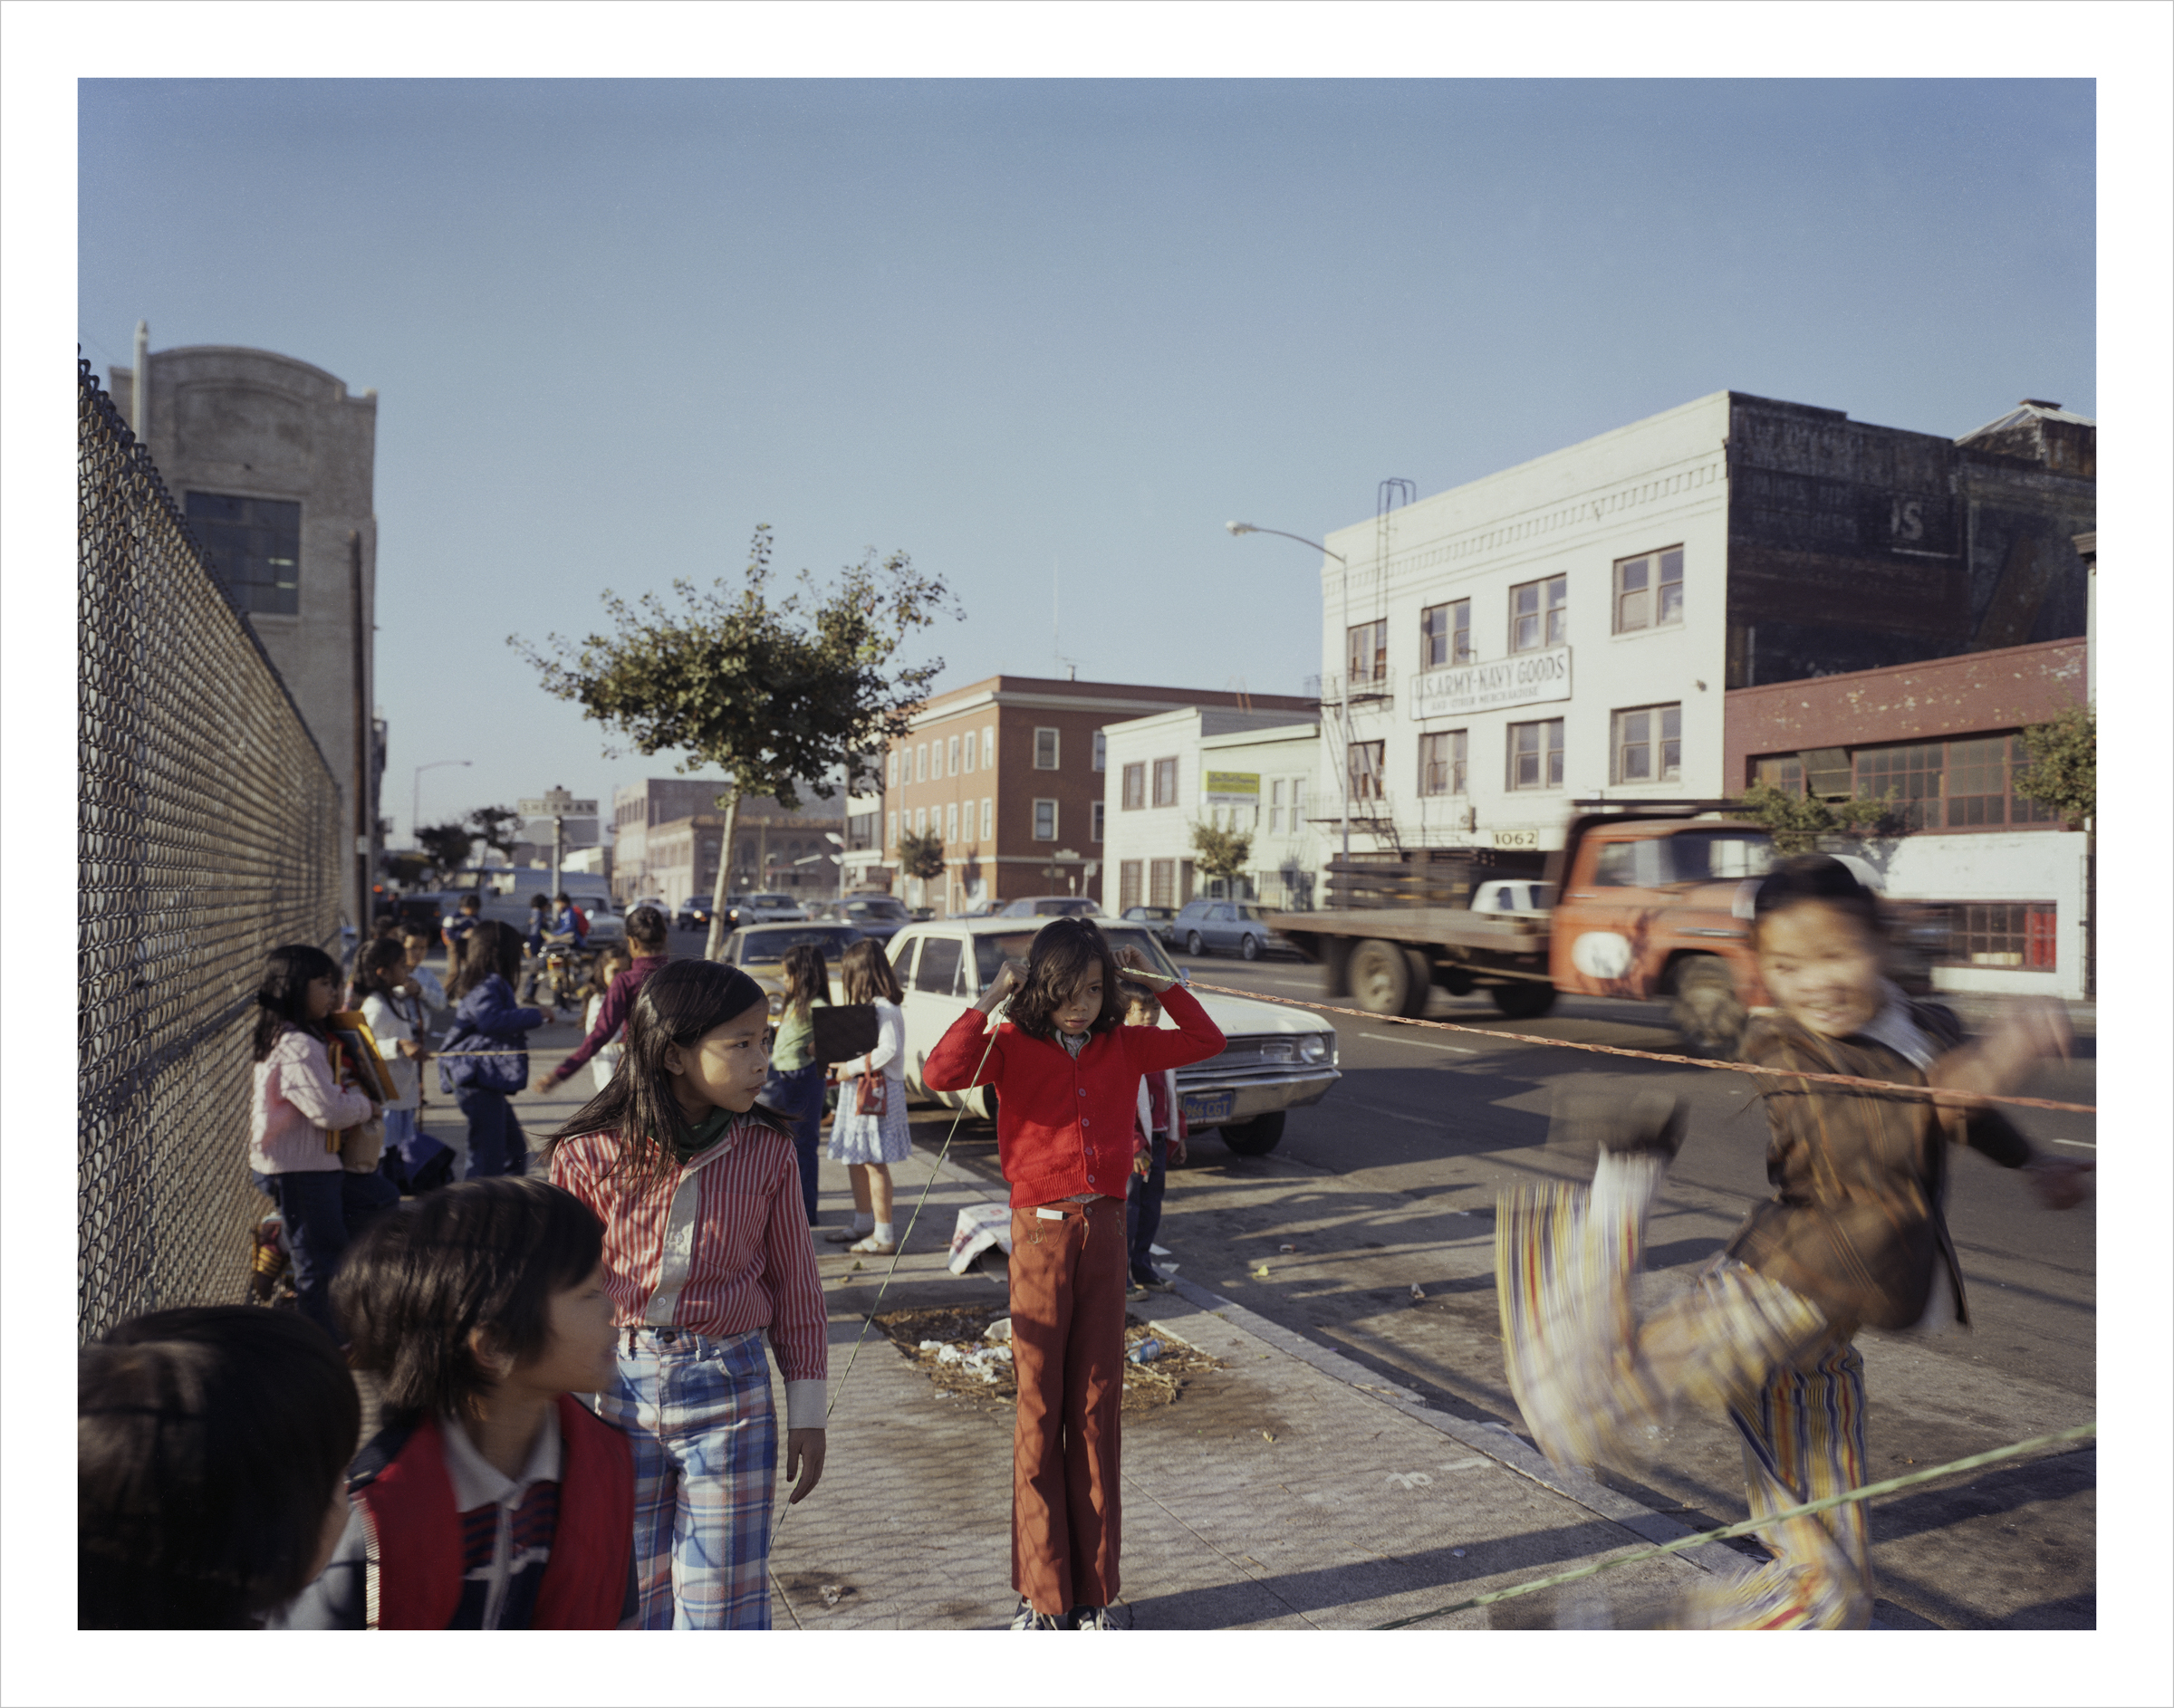 Chinese jumprope in front of Bessie Carmichael School, Folsom Street, 1980 Archival Pigment Print, 2016 16 x 20 inches, edition of 5 20 x 24 inches, edition of 2 30 x 40 inches, edition of 2